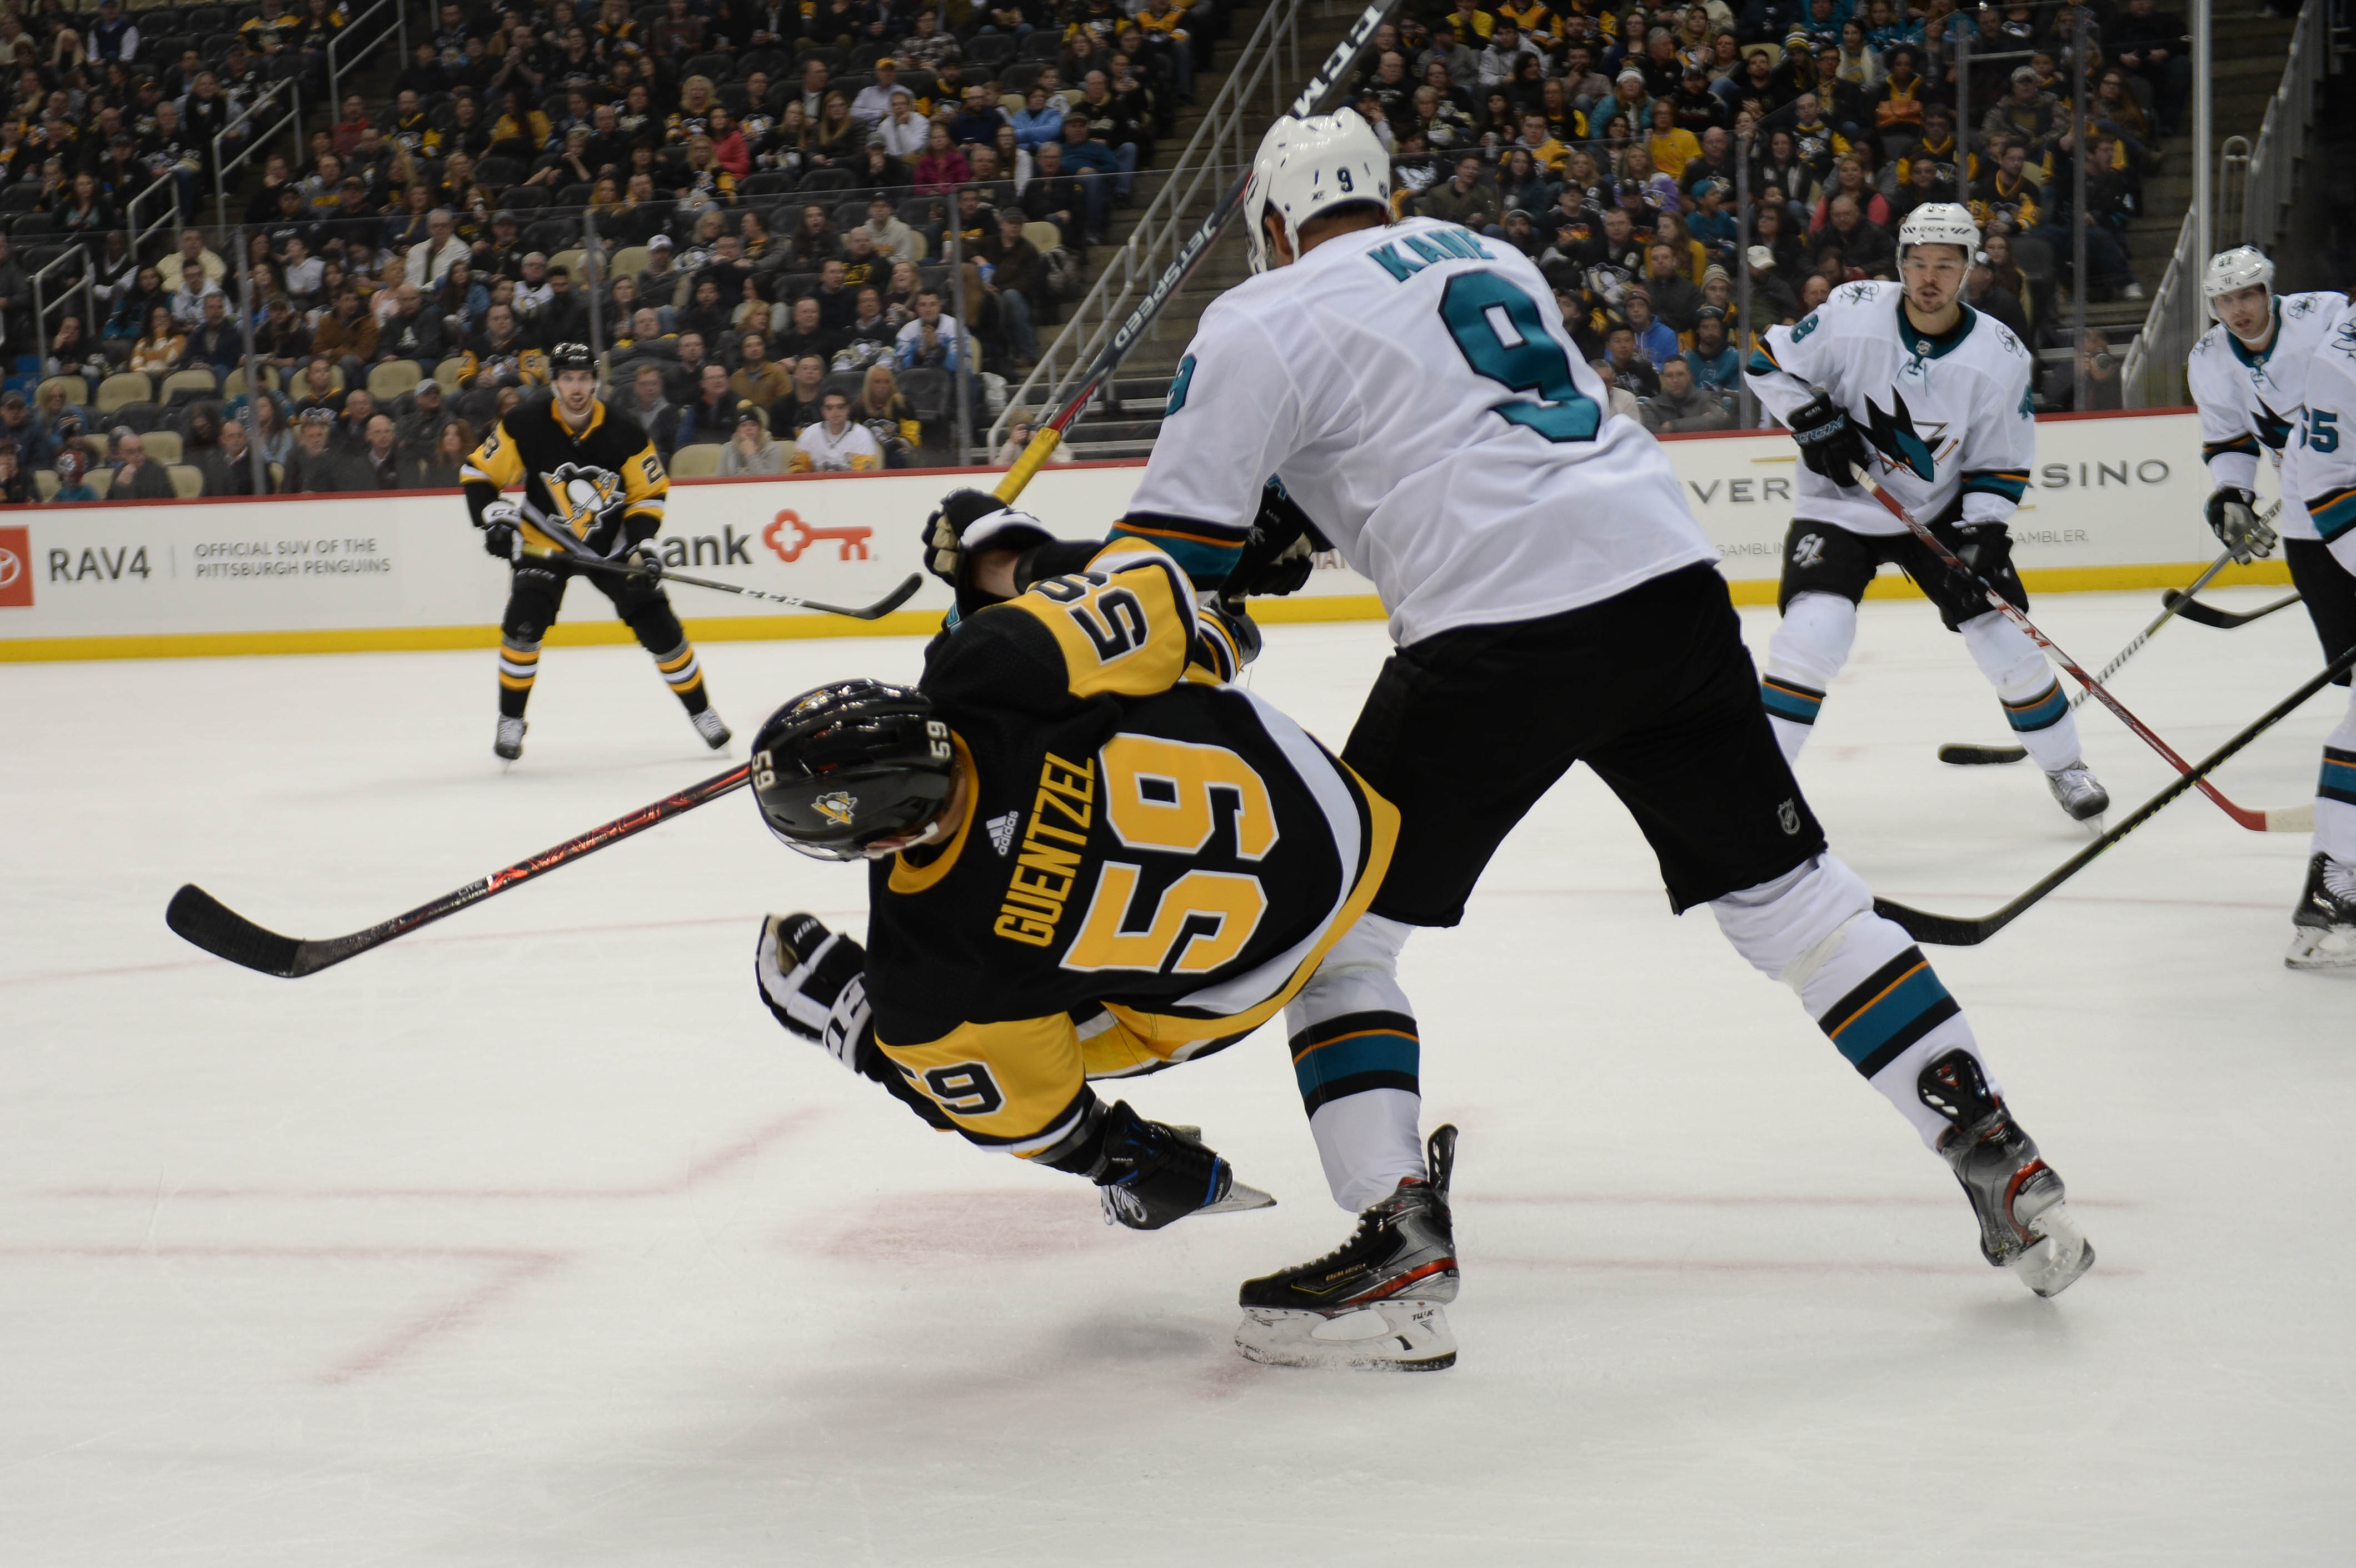 Burns leads San Jose to 4-0 blanking of Pens